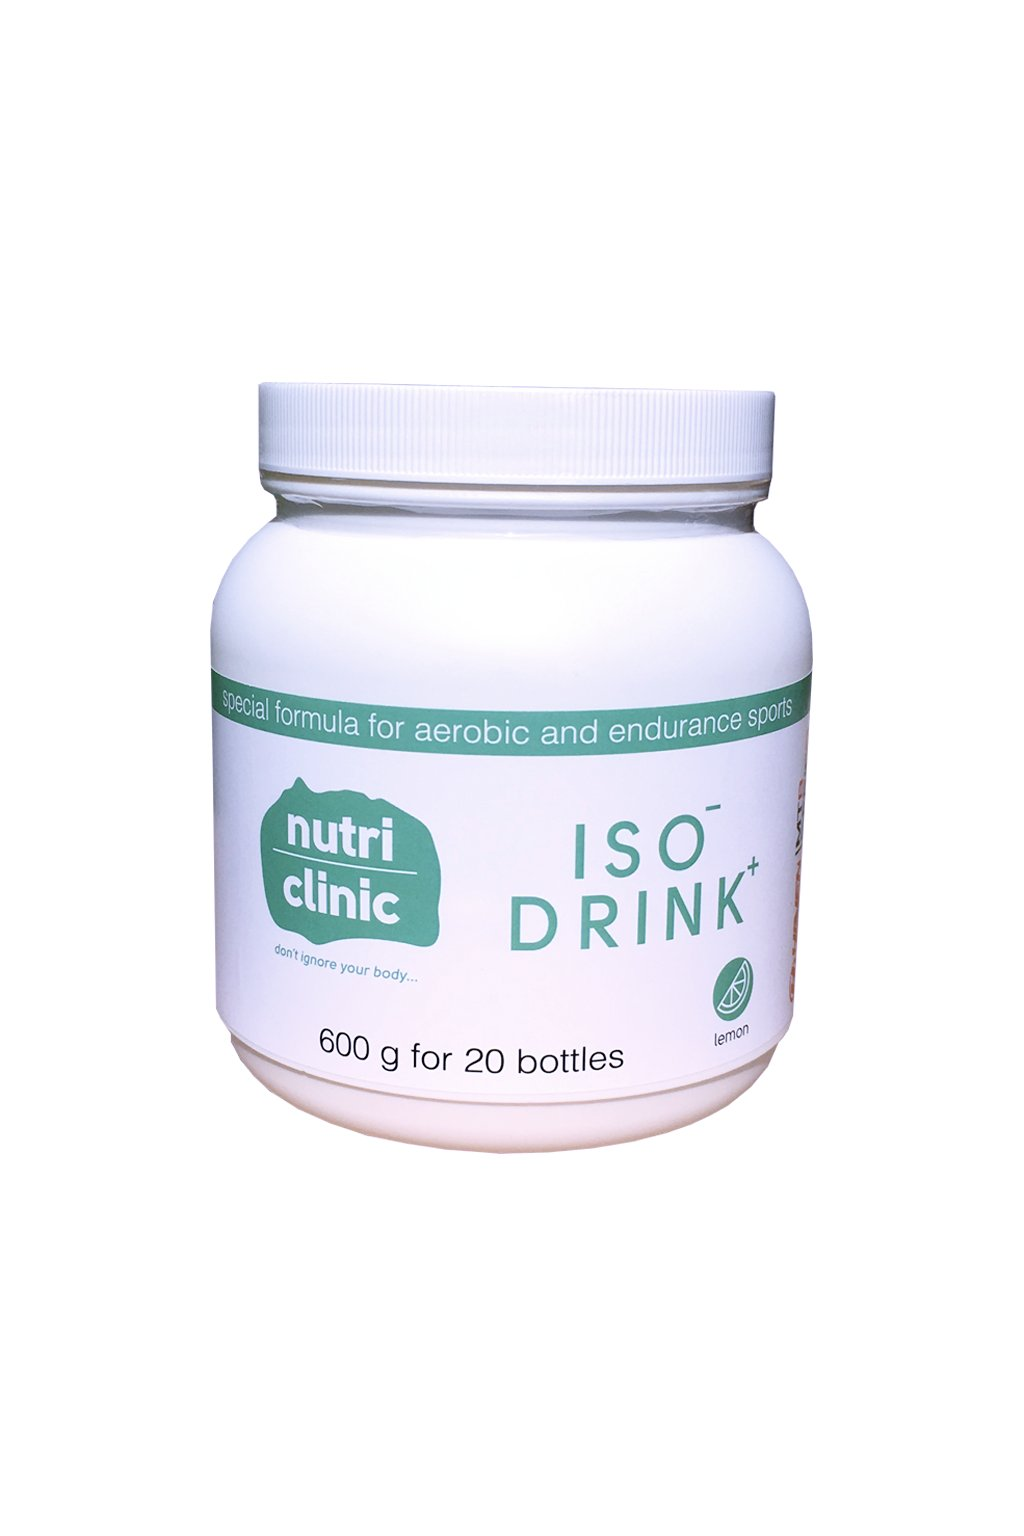 Nutri clinic Iso Drink 600g